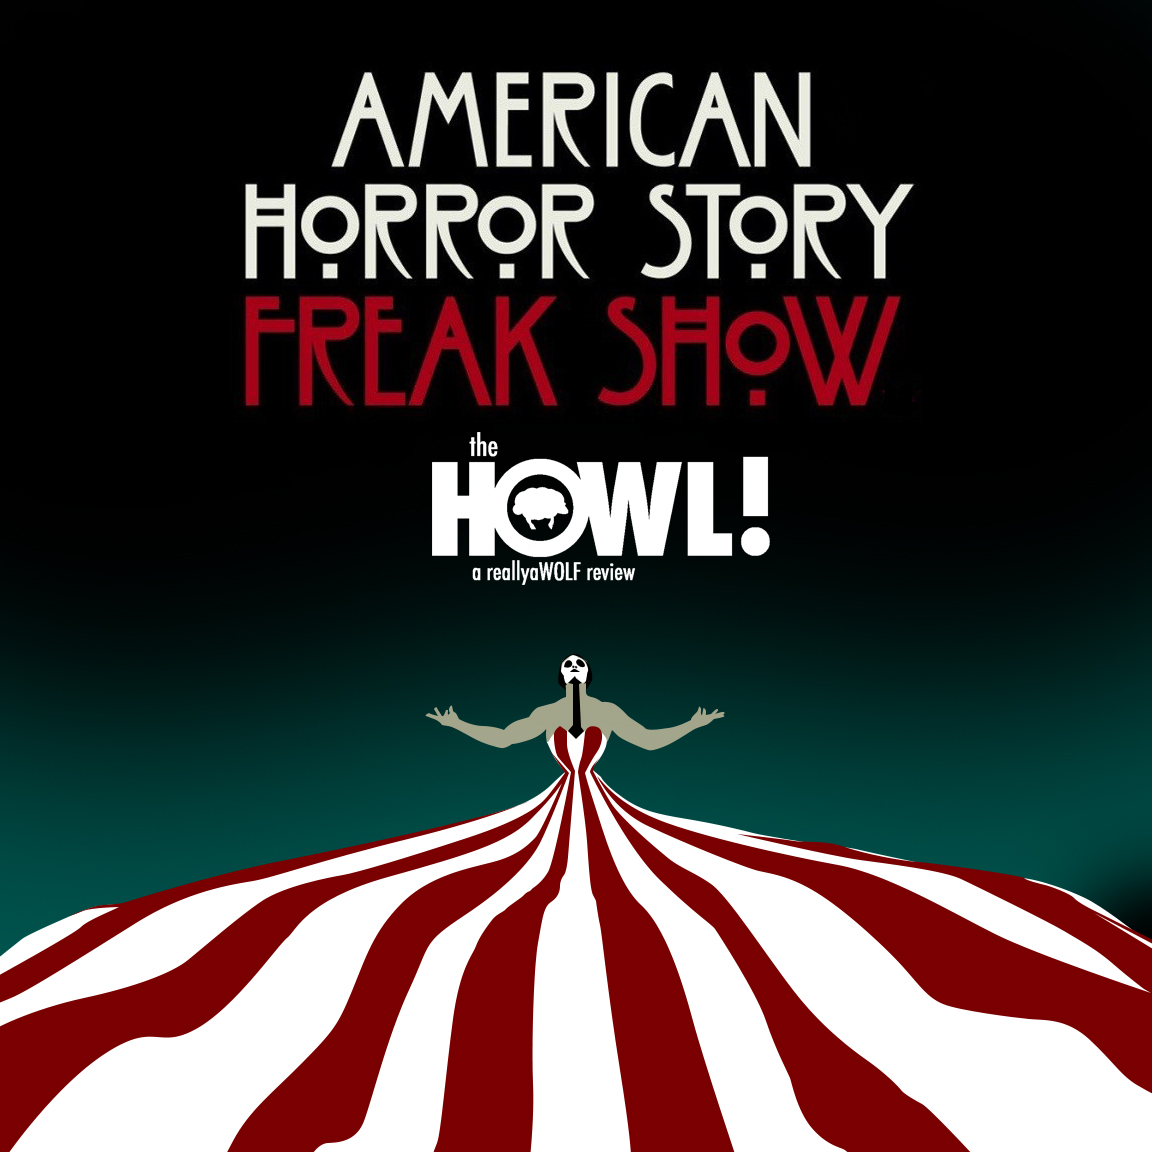 American Horror Story Freak Show raW